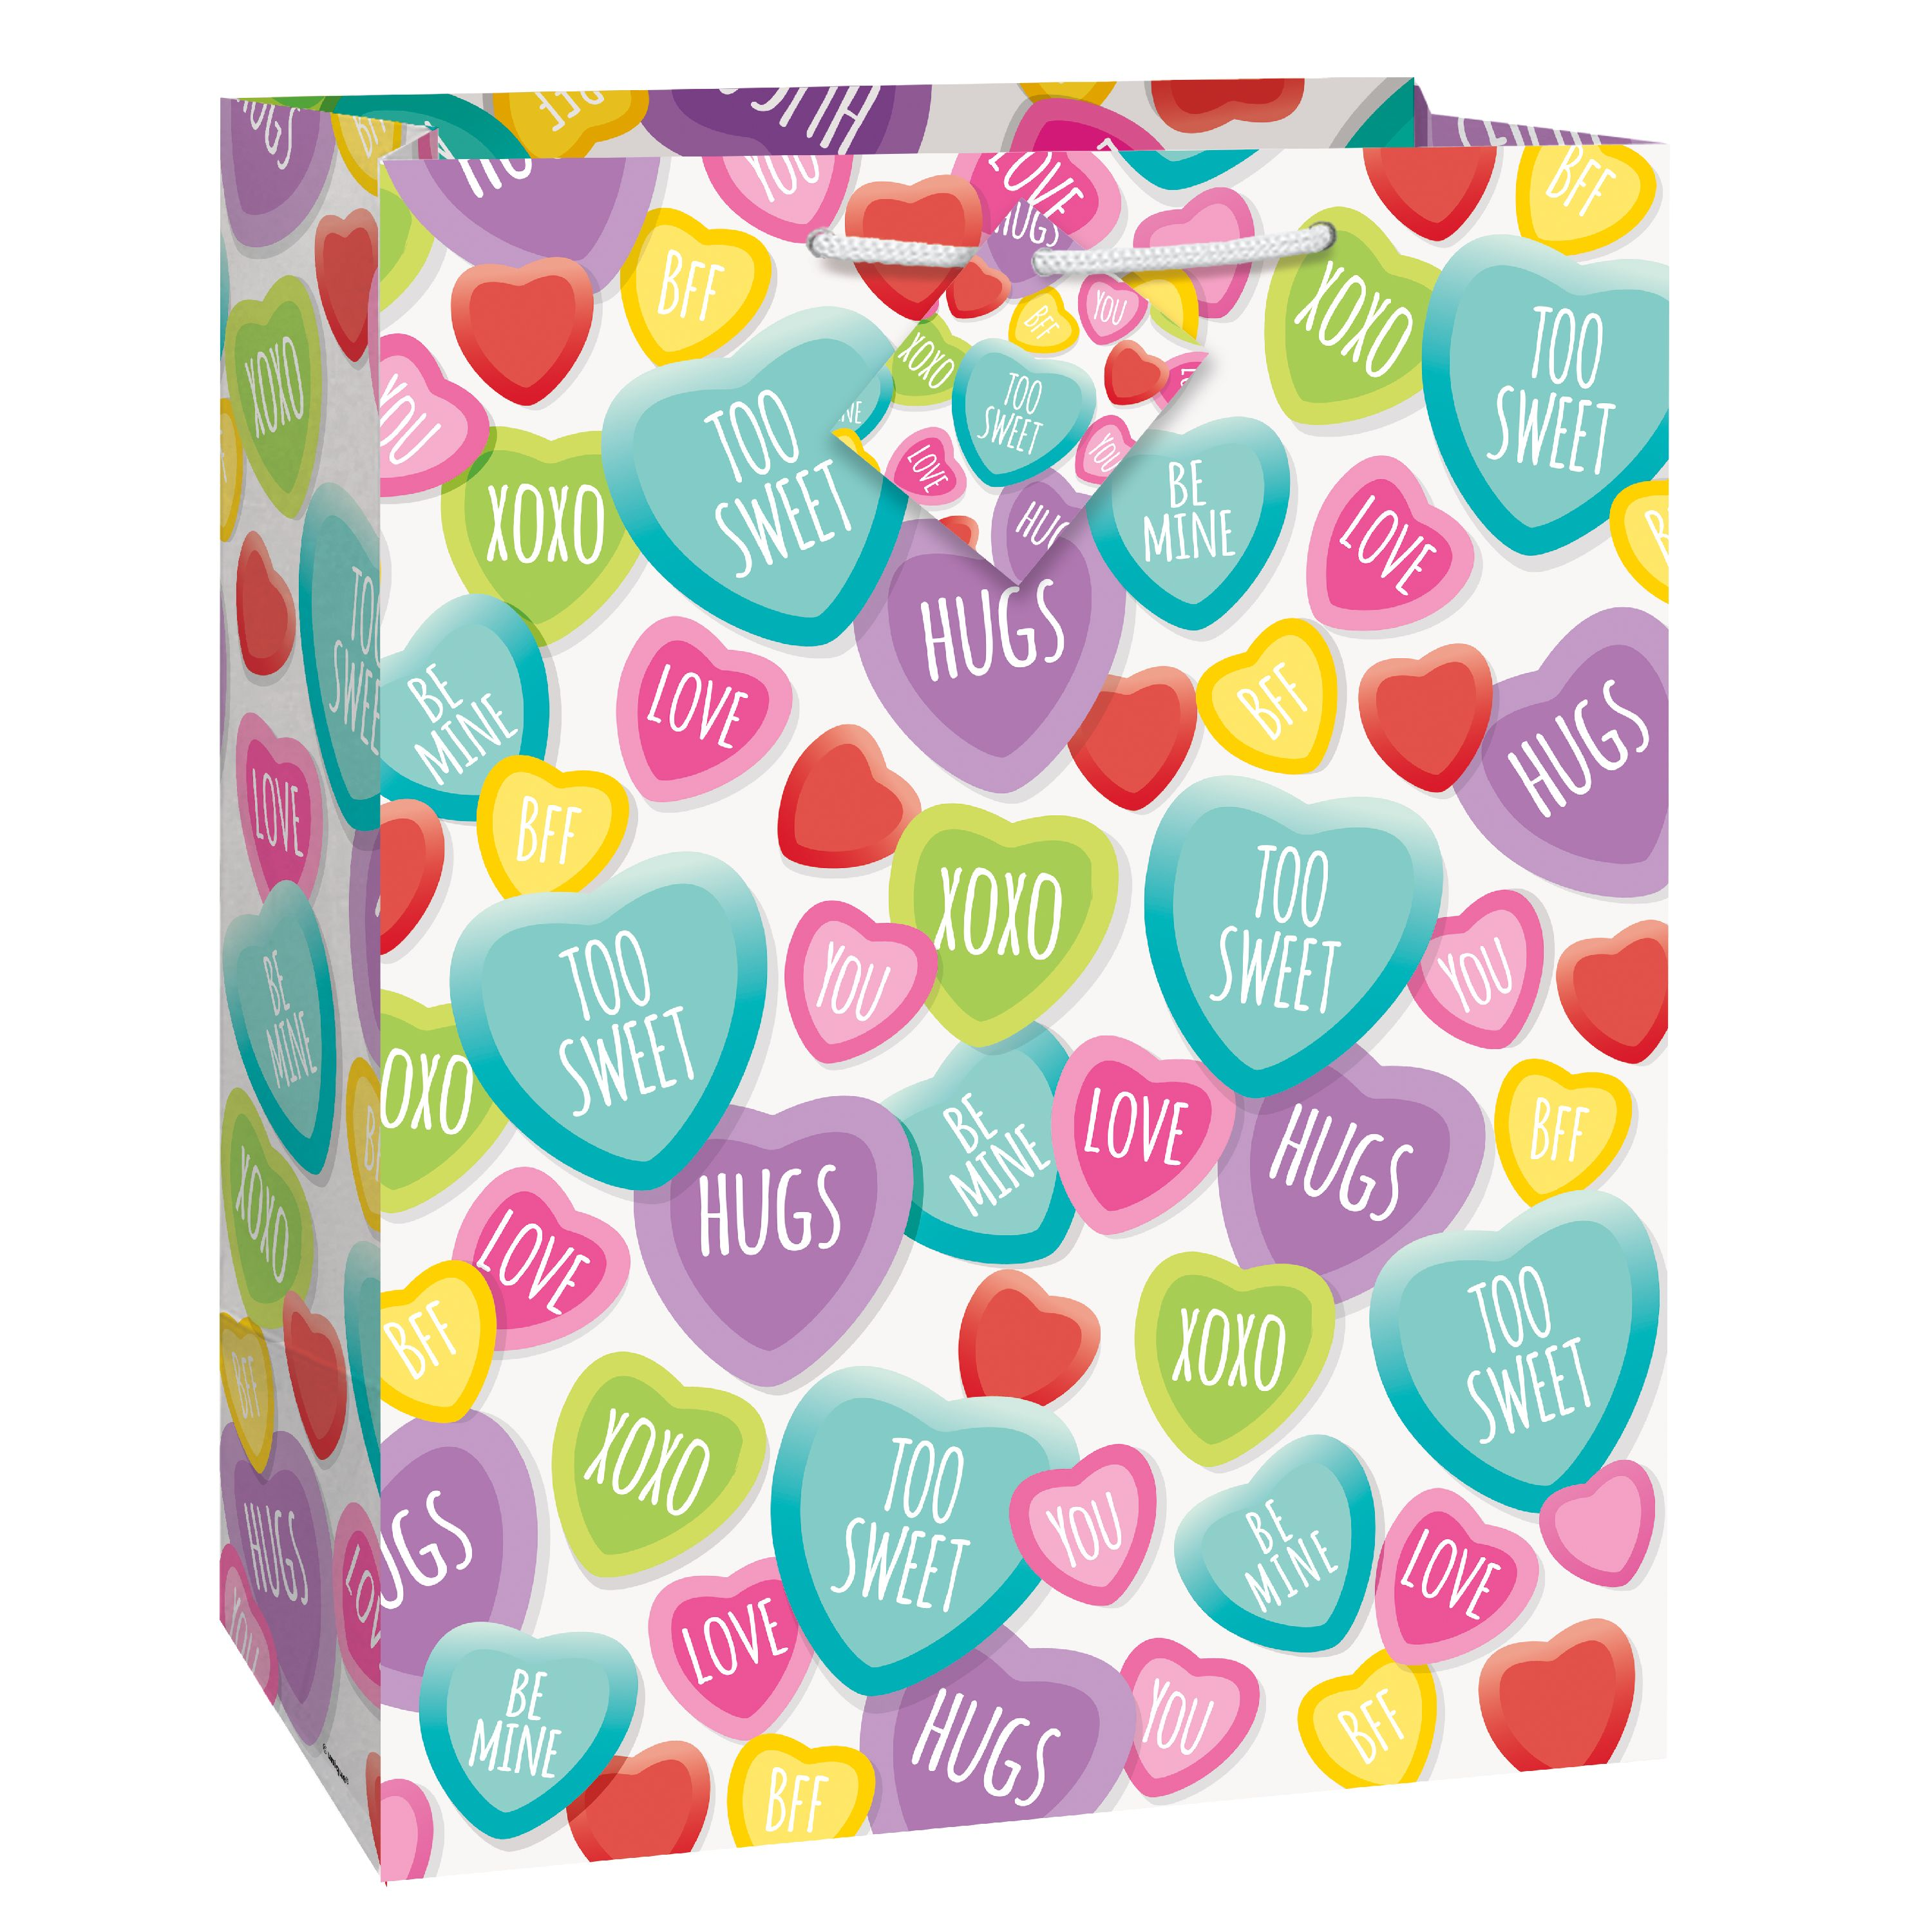 Candy Hearts Valentine's Day Gift Bag, 13 x 10.5 in, 1ct